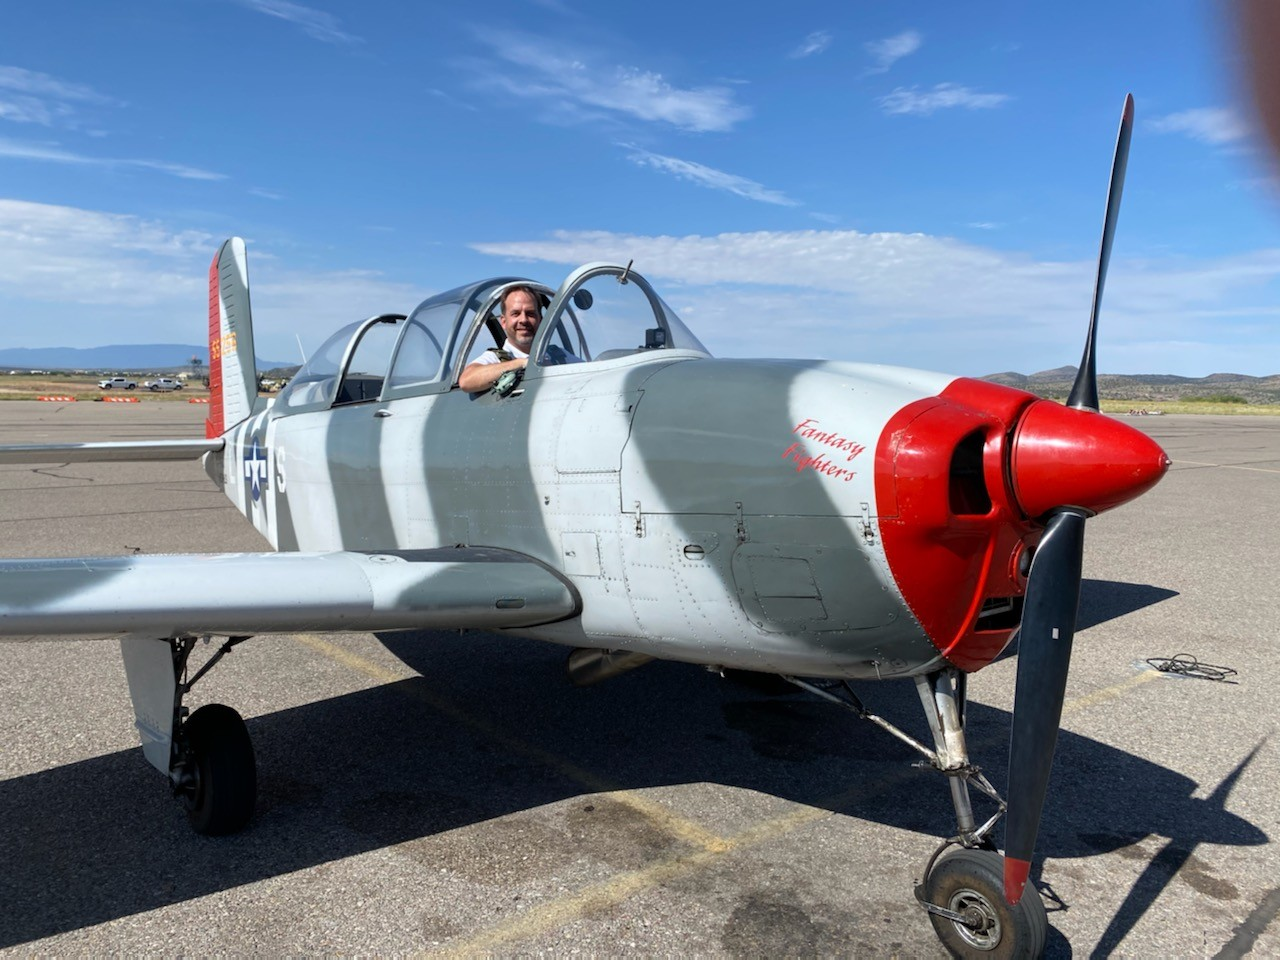 Don in the T-34 Mentor, Santa Fe, New Mexico